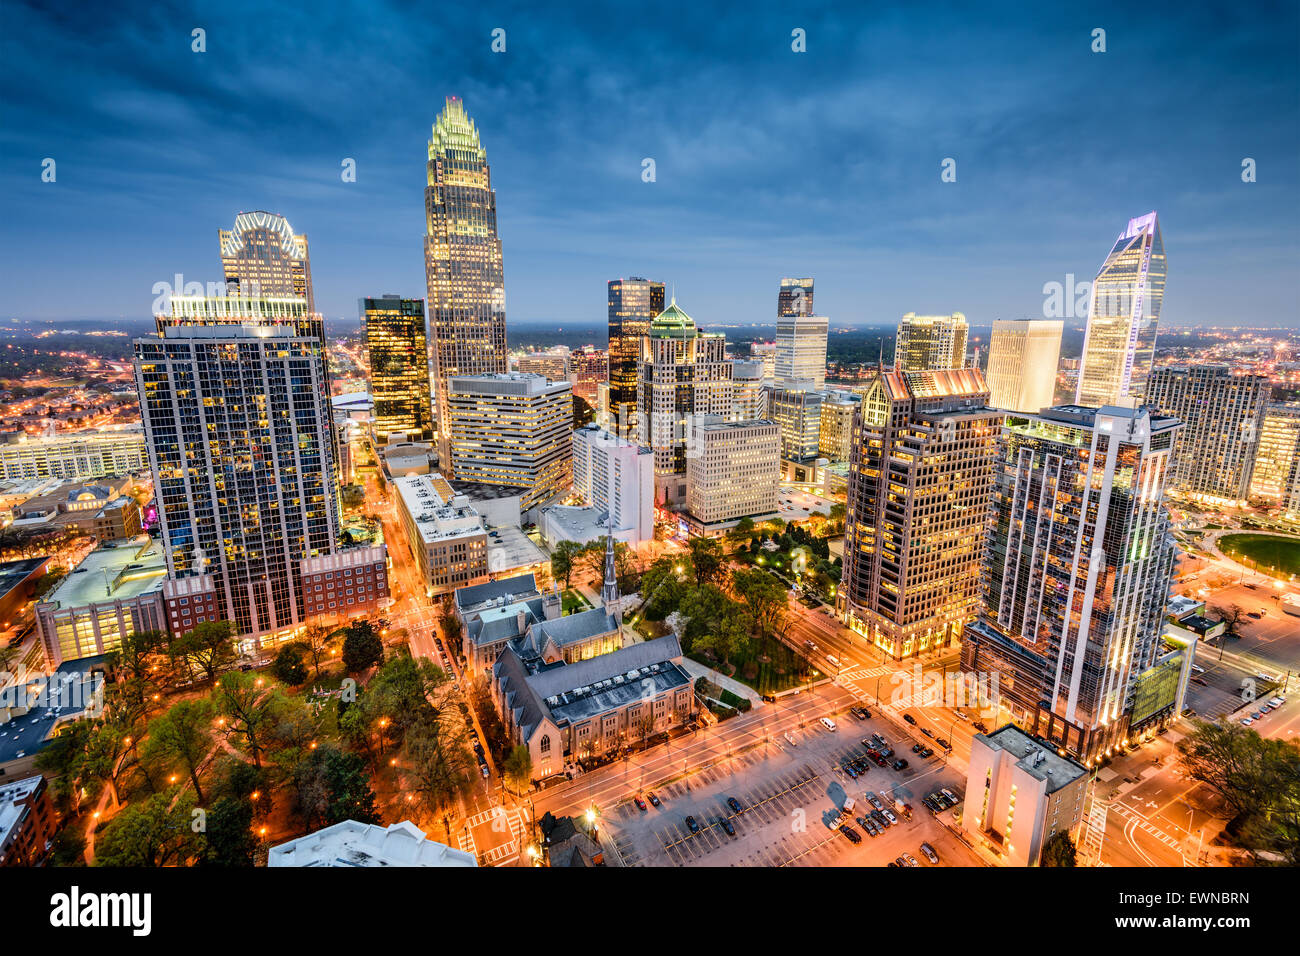 Charlotte, North Carolina, USA uptown Stadtbild. Stockbild